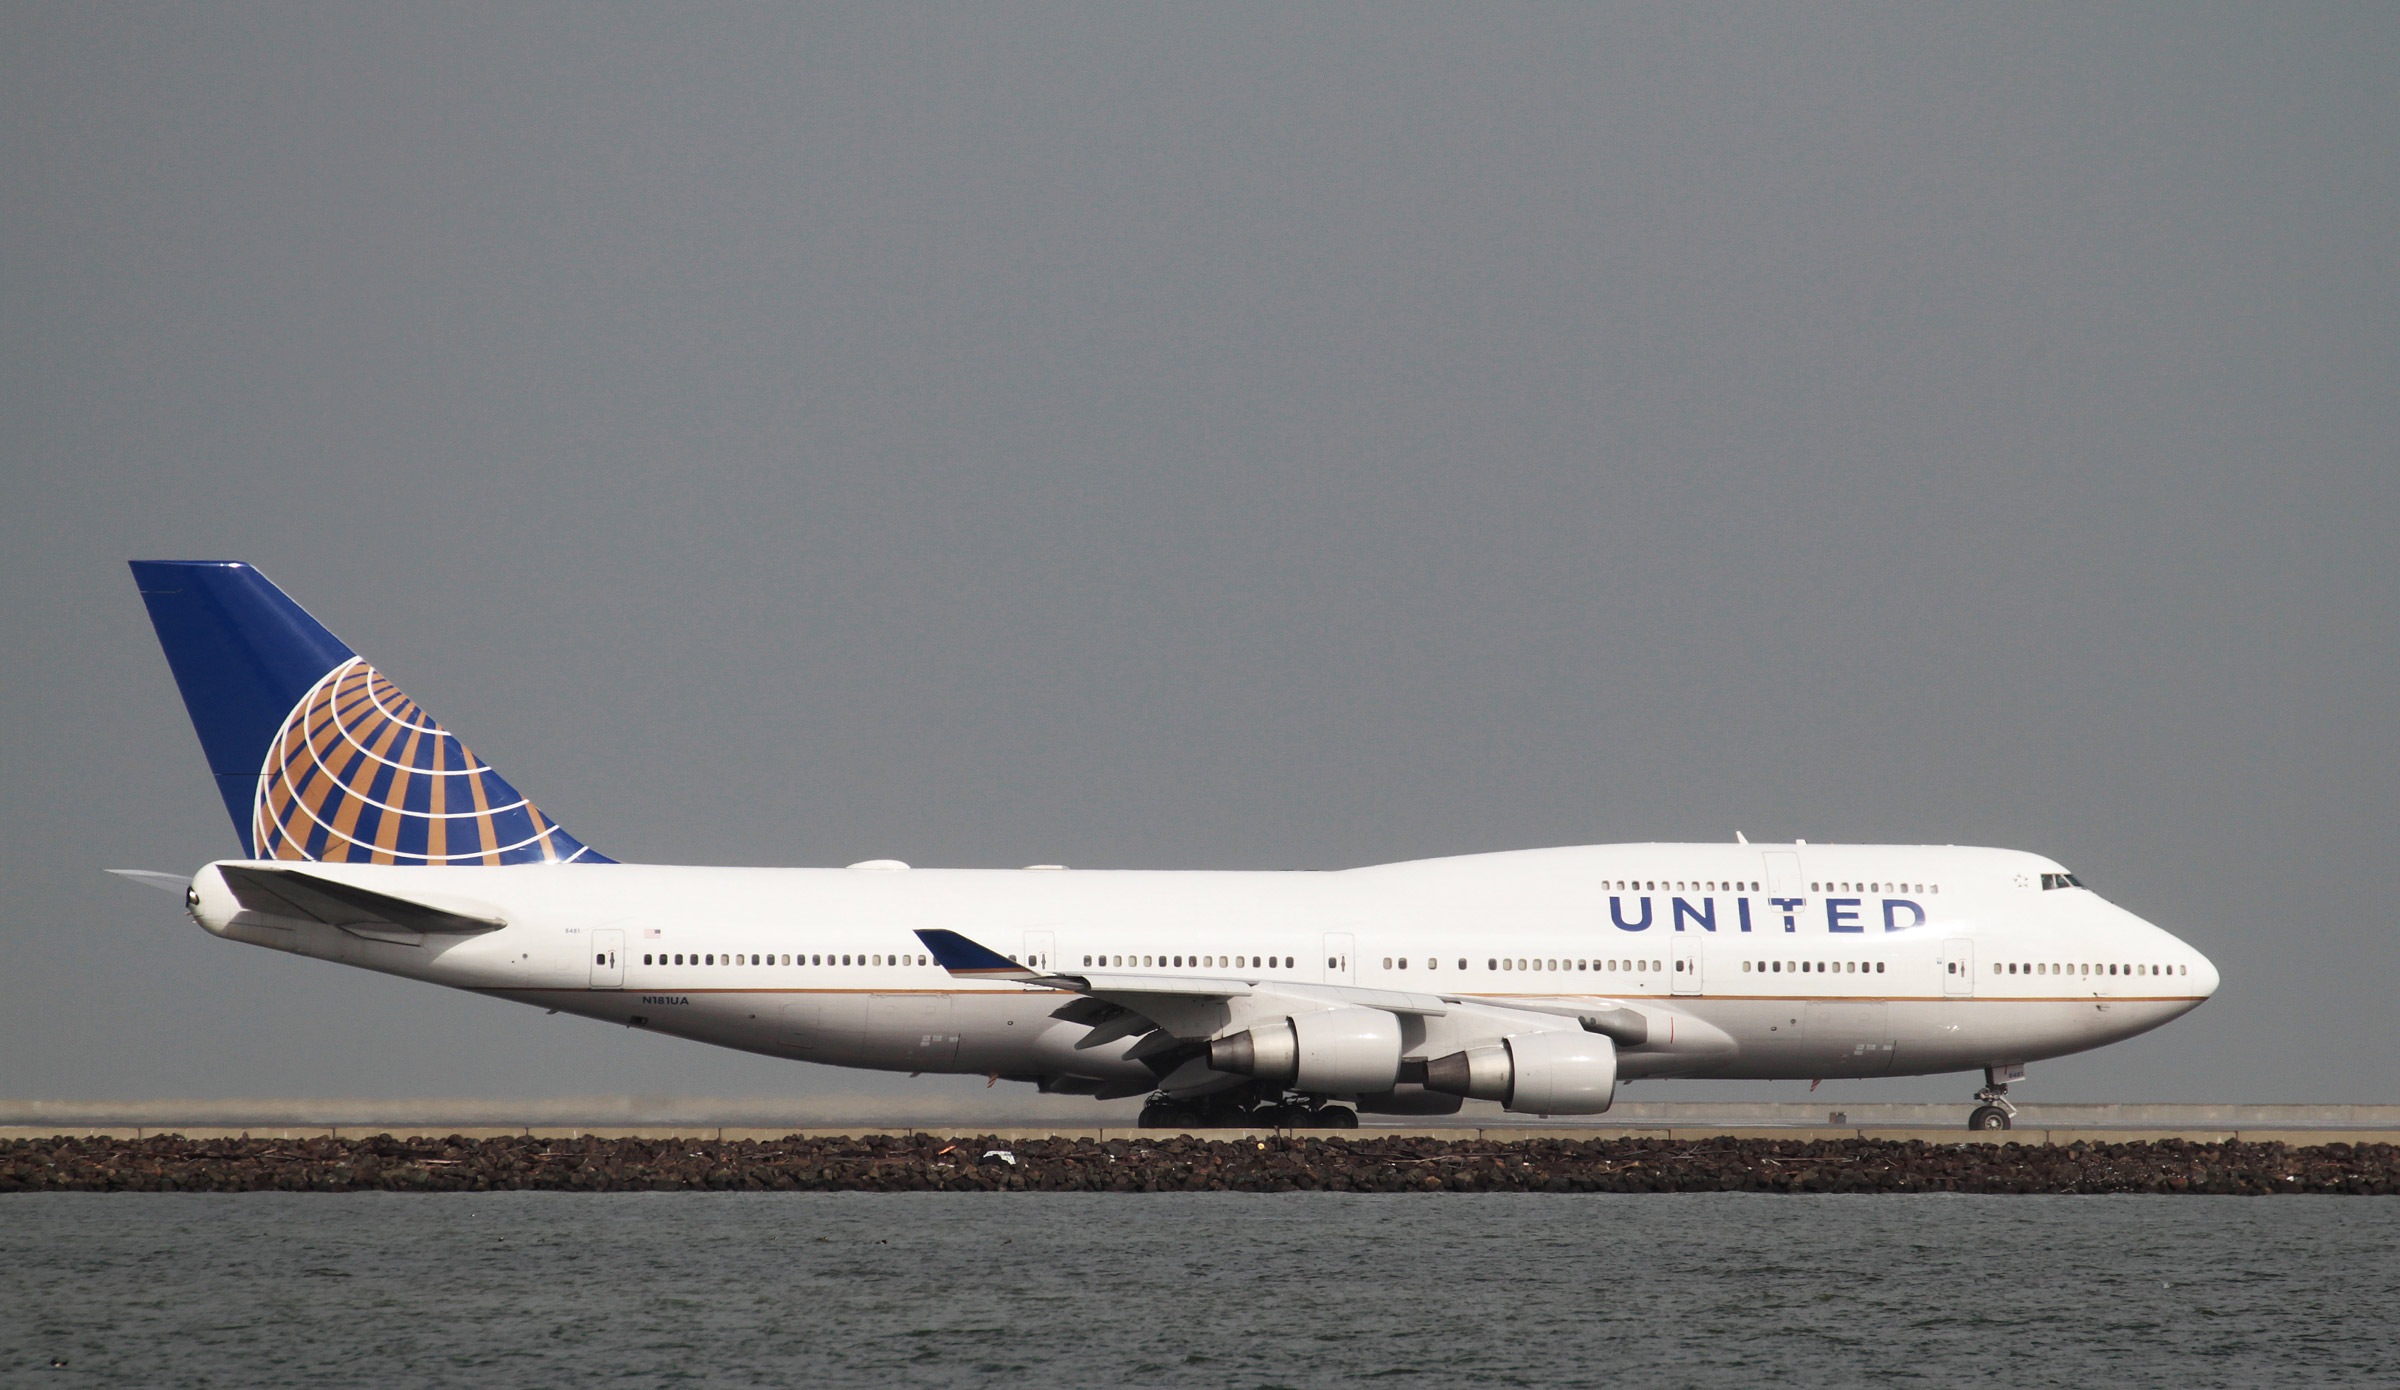 A United Airlines Boeing 747-400 taxis at San Francisco International Airport, San Francisco, California, February 7, 2015.